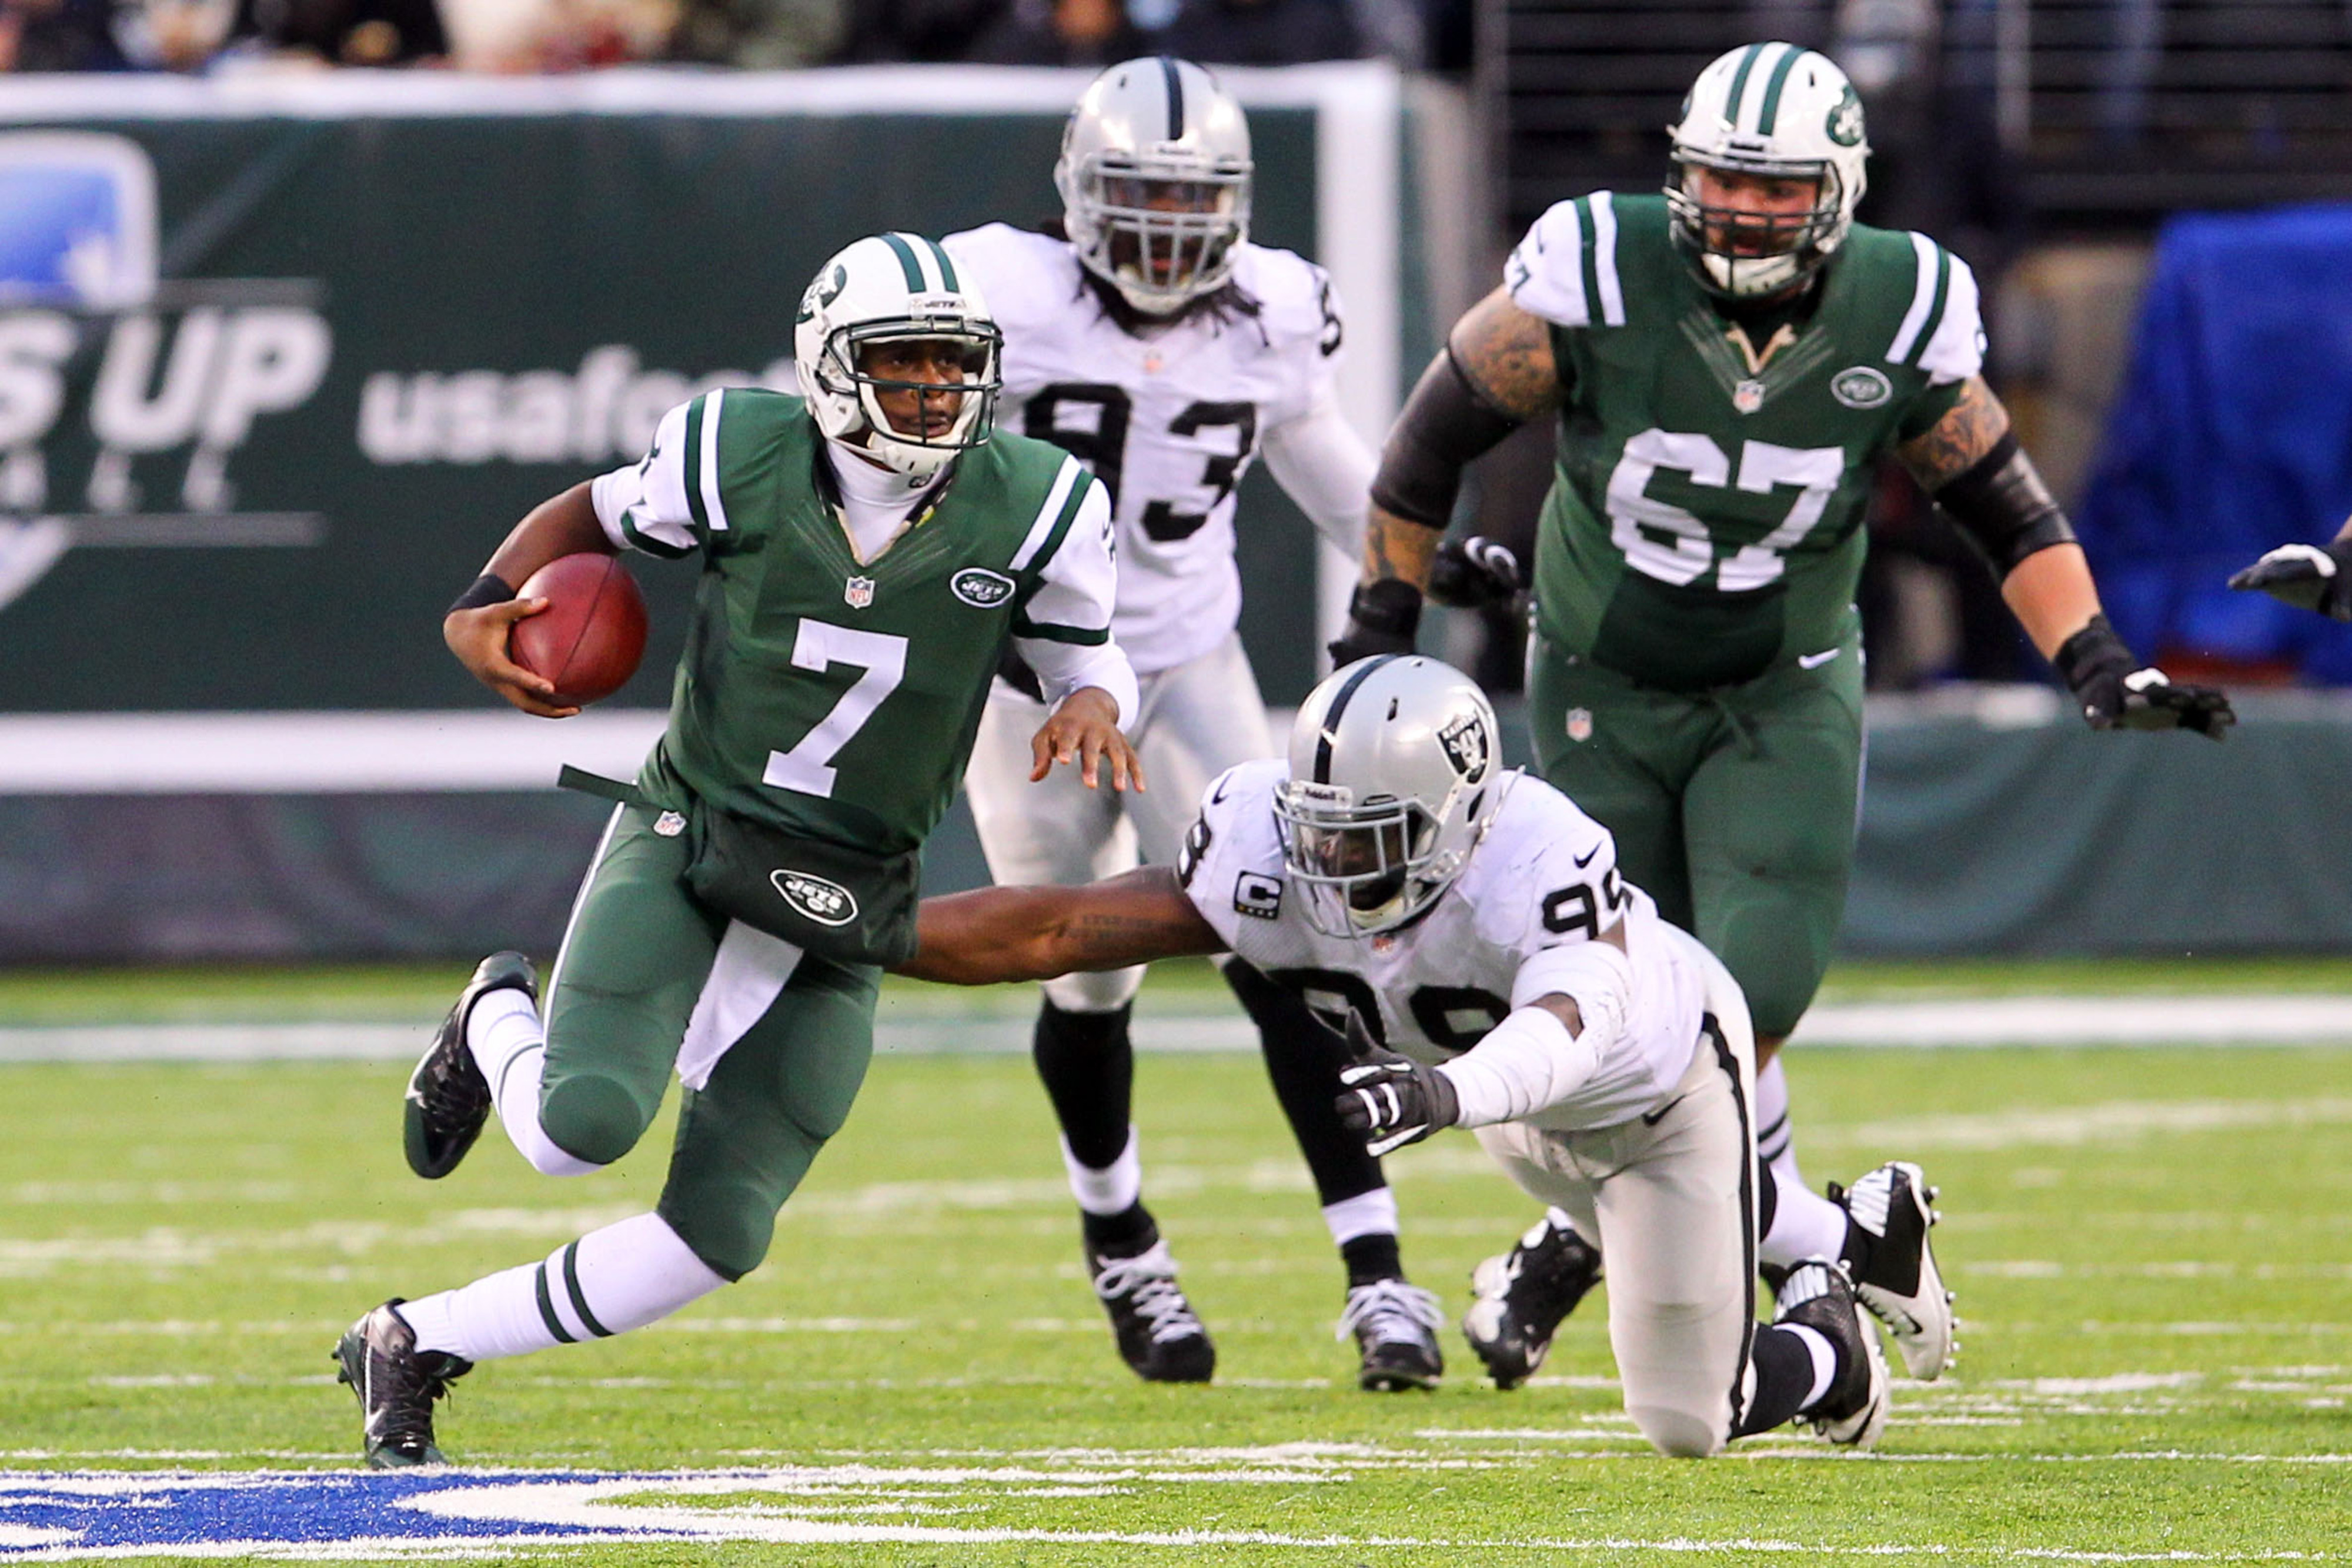 Geno Smith believes struggles were due to 'playing like a robot'